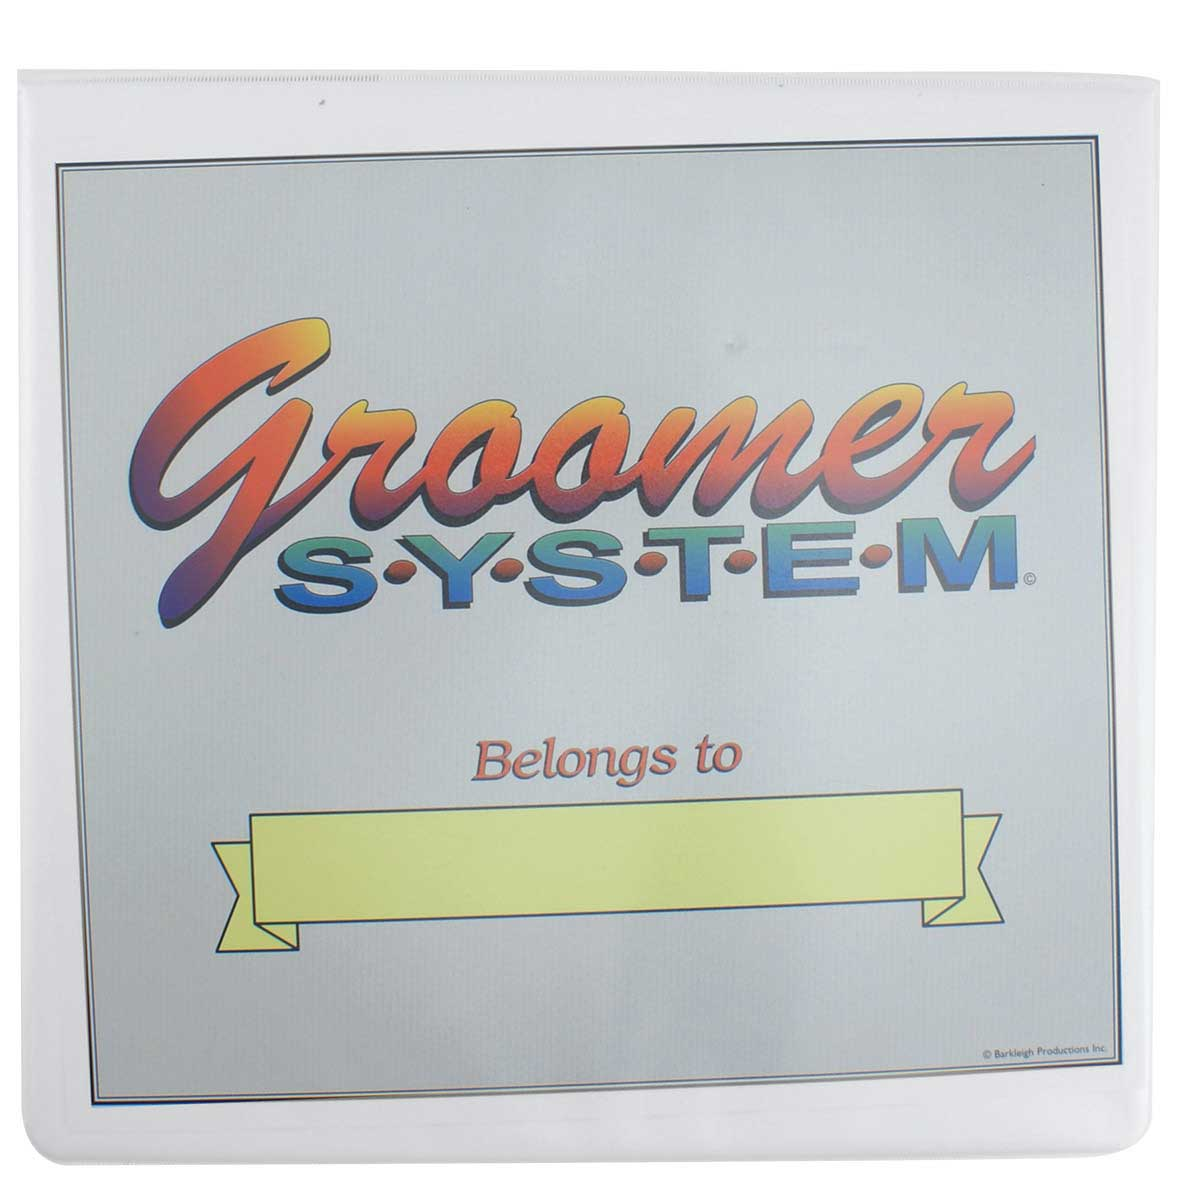 Groomer System Complete for Professional Groomers Belongs To Sheet